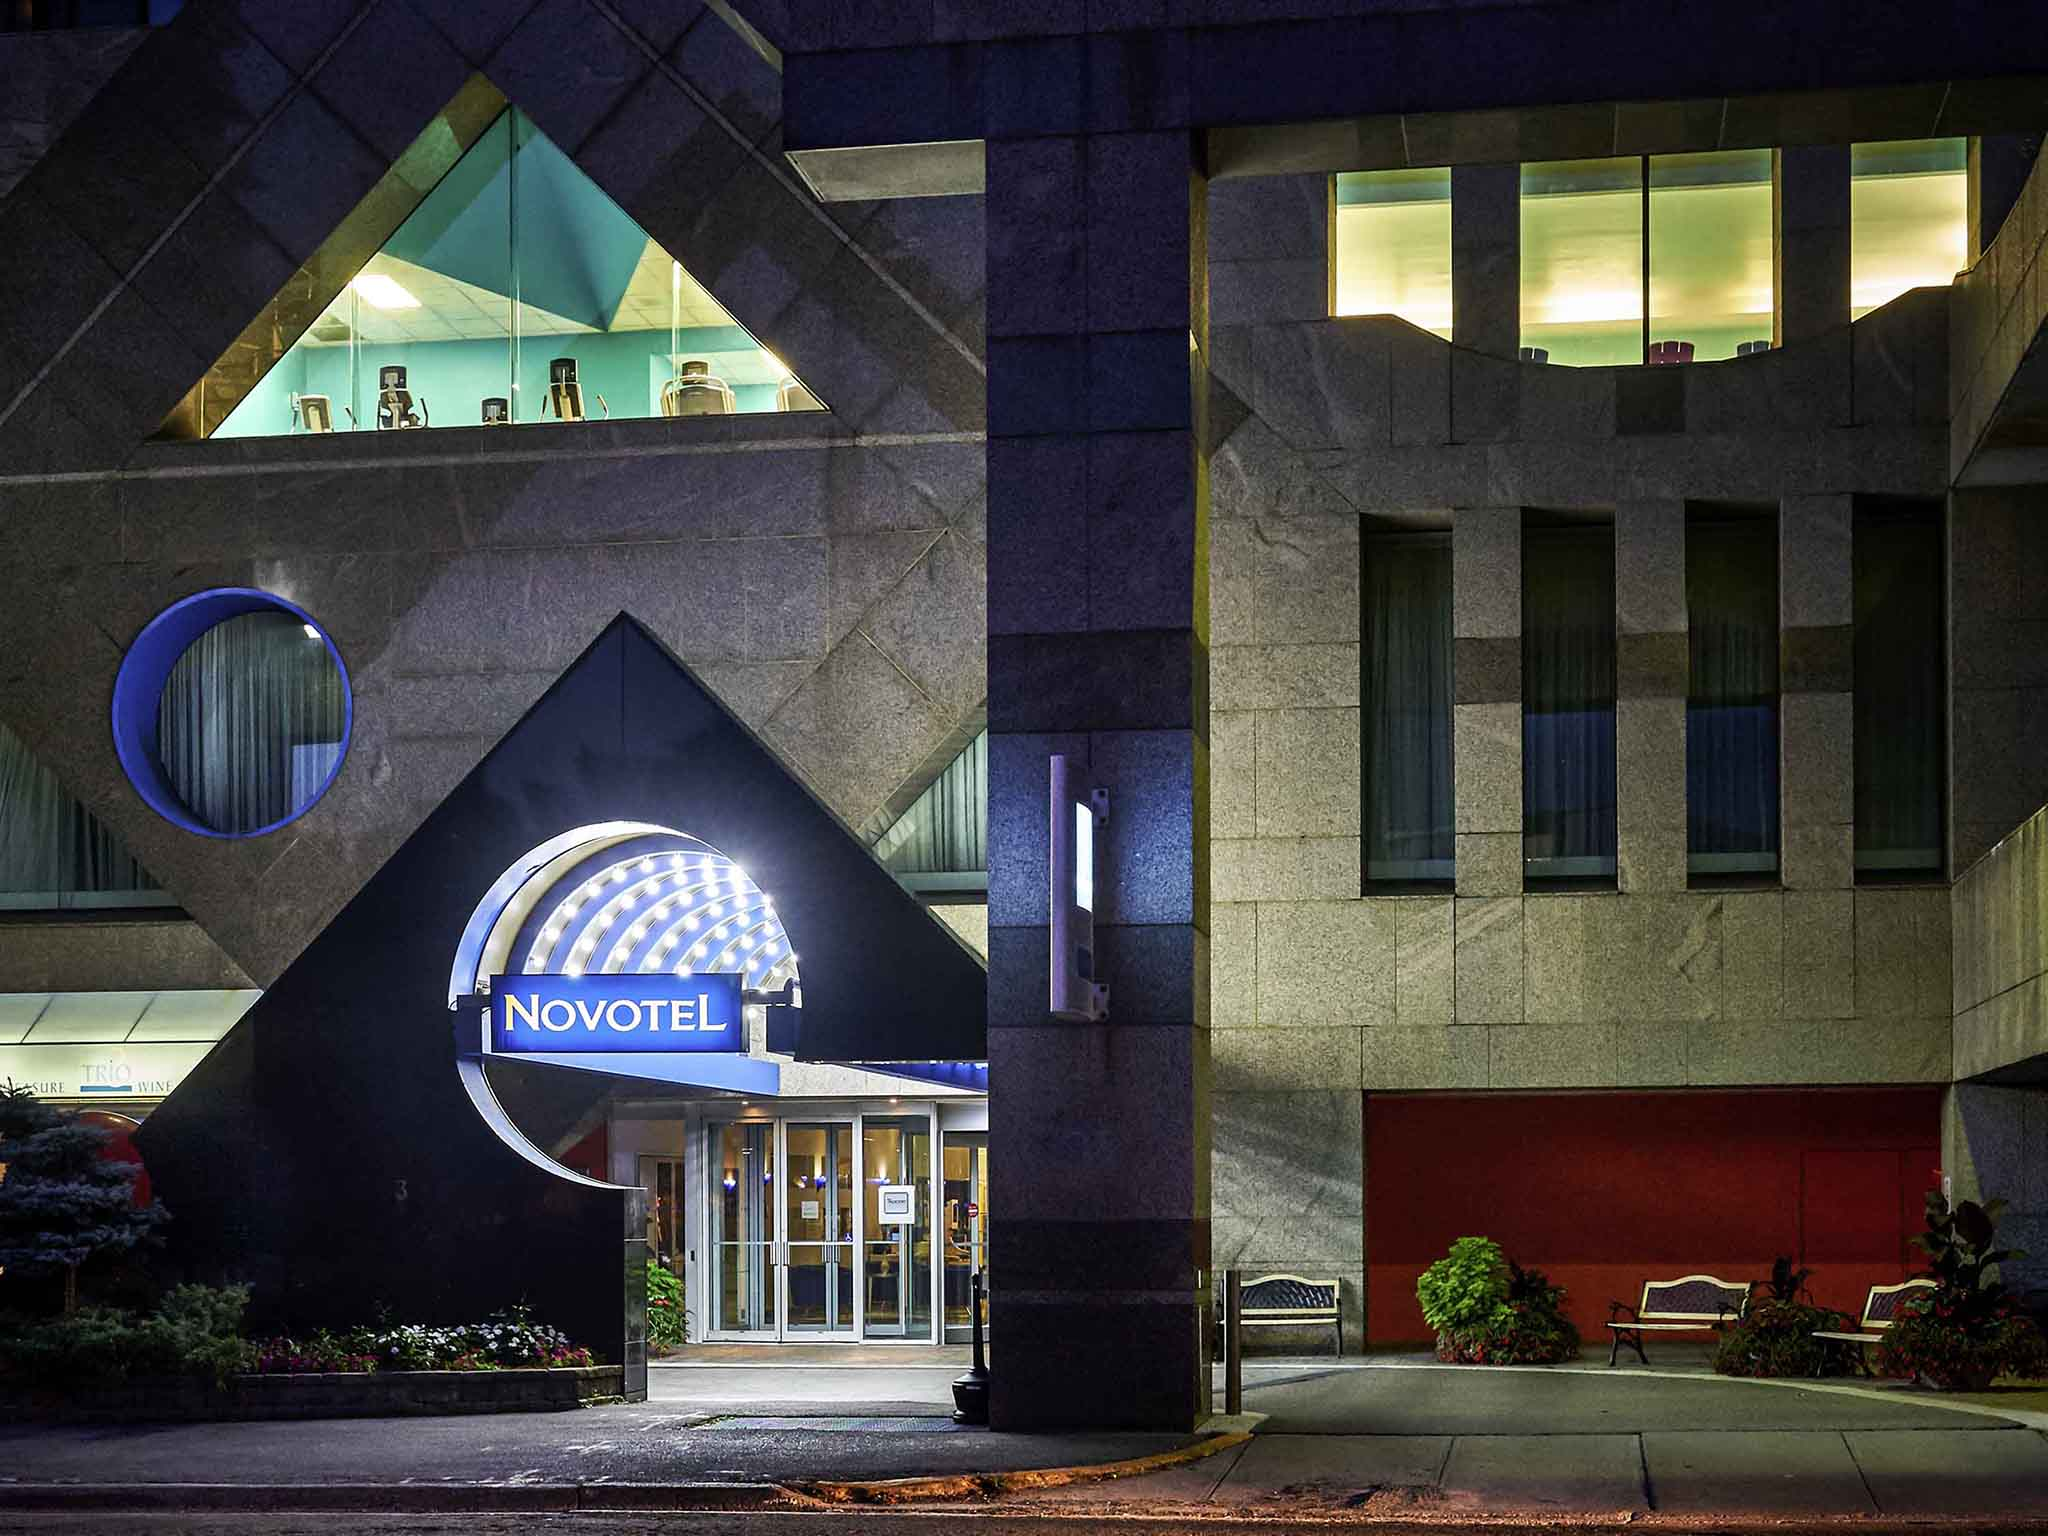 Hotel in Toronto - Novotel Toronto North York on two bedroom house simple floor plans, interior design plans, duplex house plans, best country house plans, best split level home plans, best glass house plans, best bathroom design plans, best green house plans, best home design, best house maps, best custom home plans, best timber frame home plans, best unique house plans, best kitchen plans, best beach house plans, best house drawing plans, best floor plans, best european house plans, best marketing plans, 2013 best small house plans,